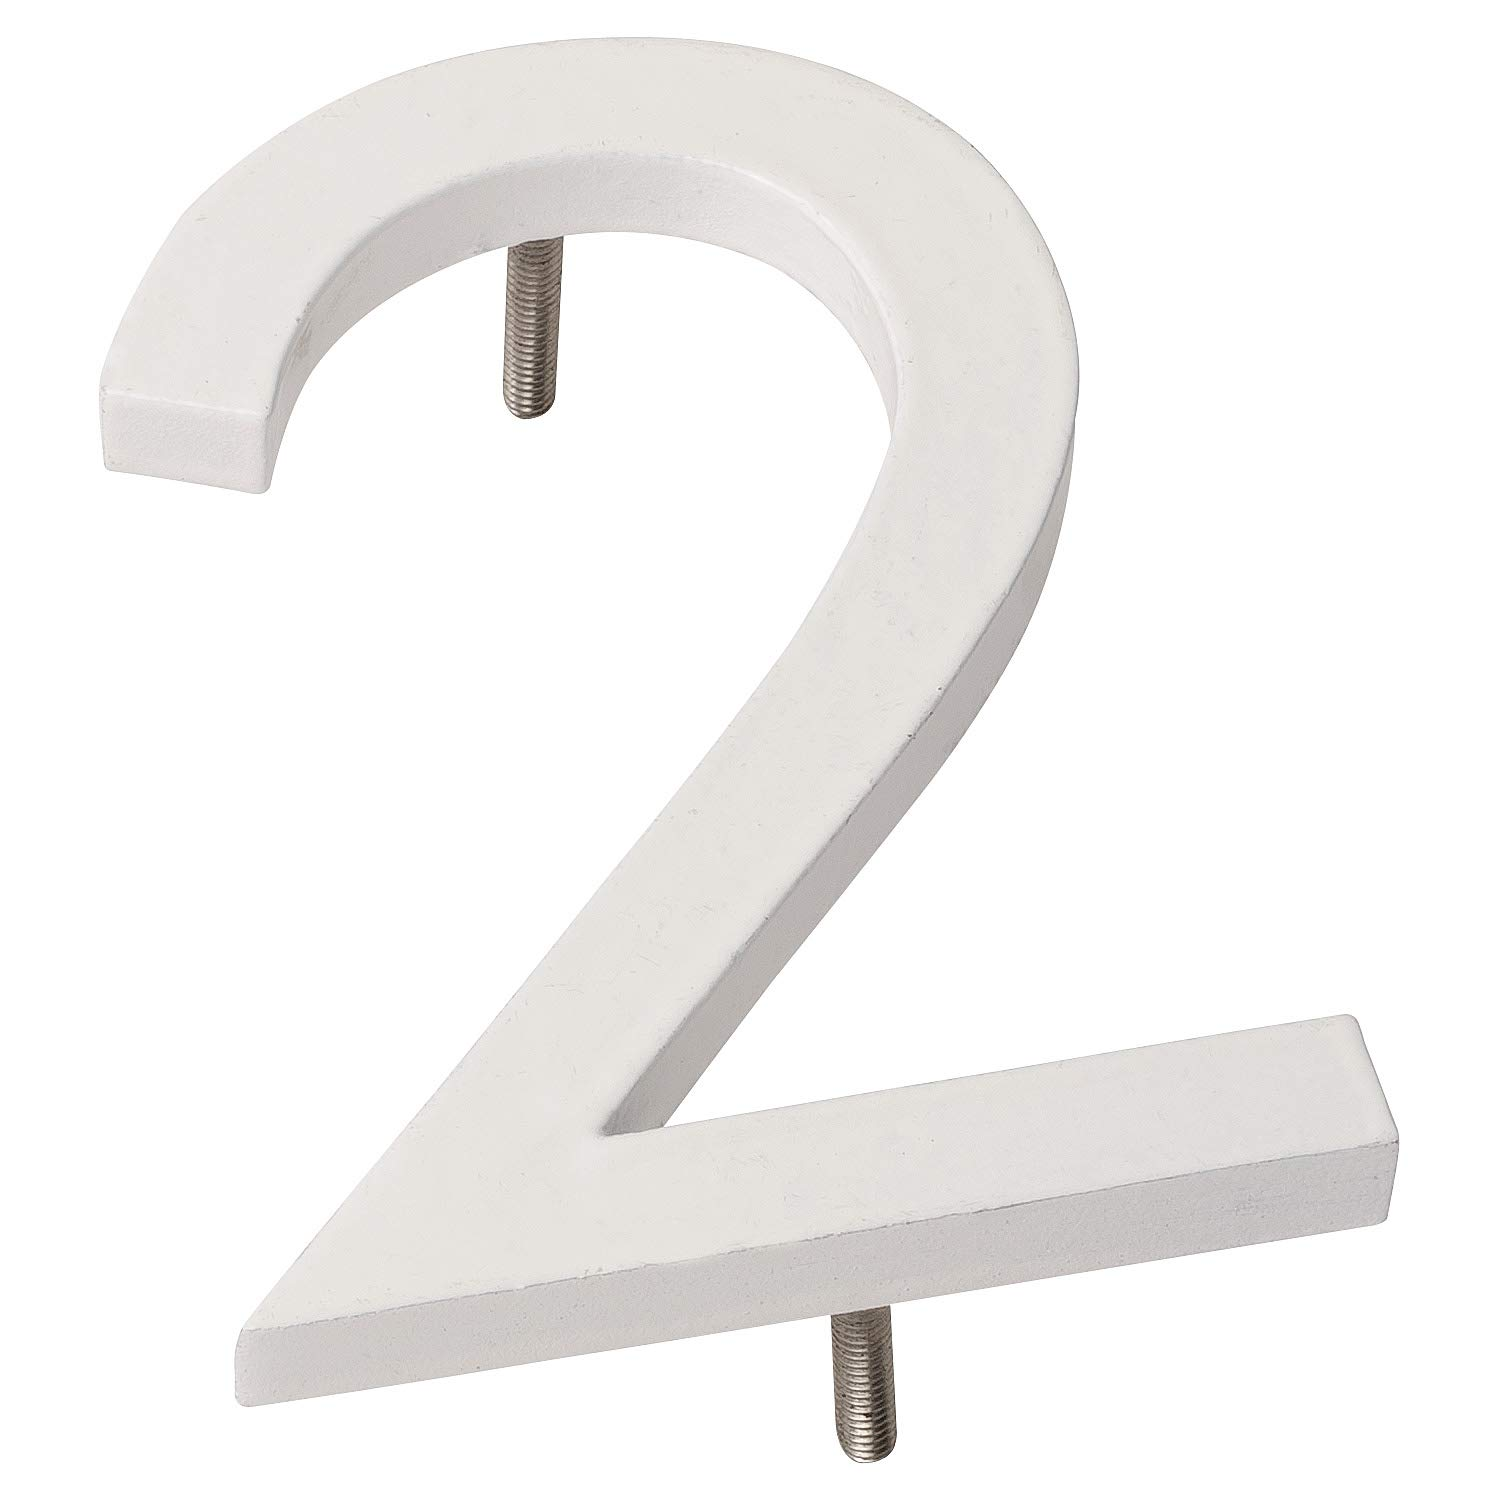 Montague Metal Products MHN-10-2-F-WE1 Floating House Number, 10 inches x 7.19 inches x 0.375 inches White